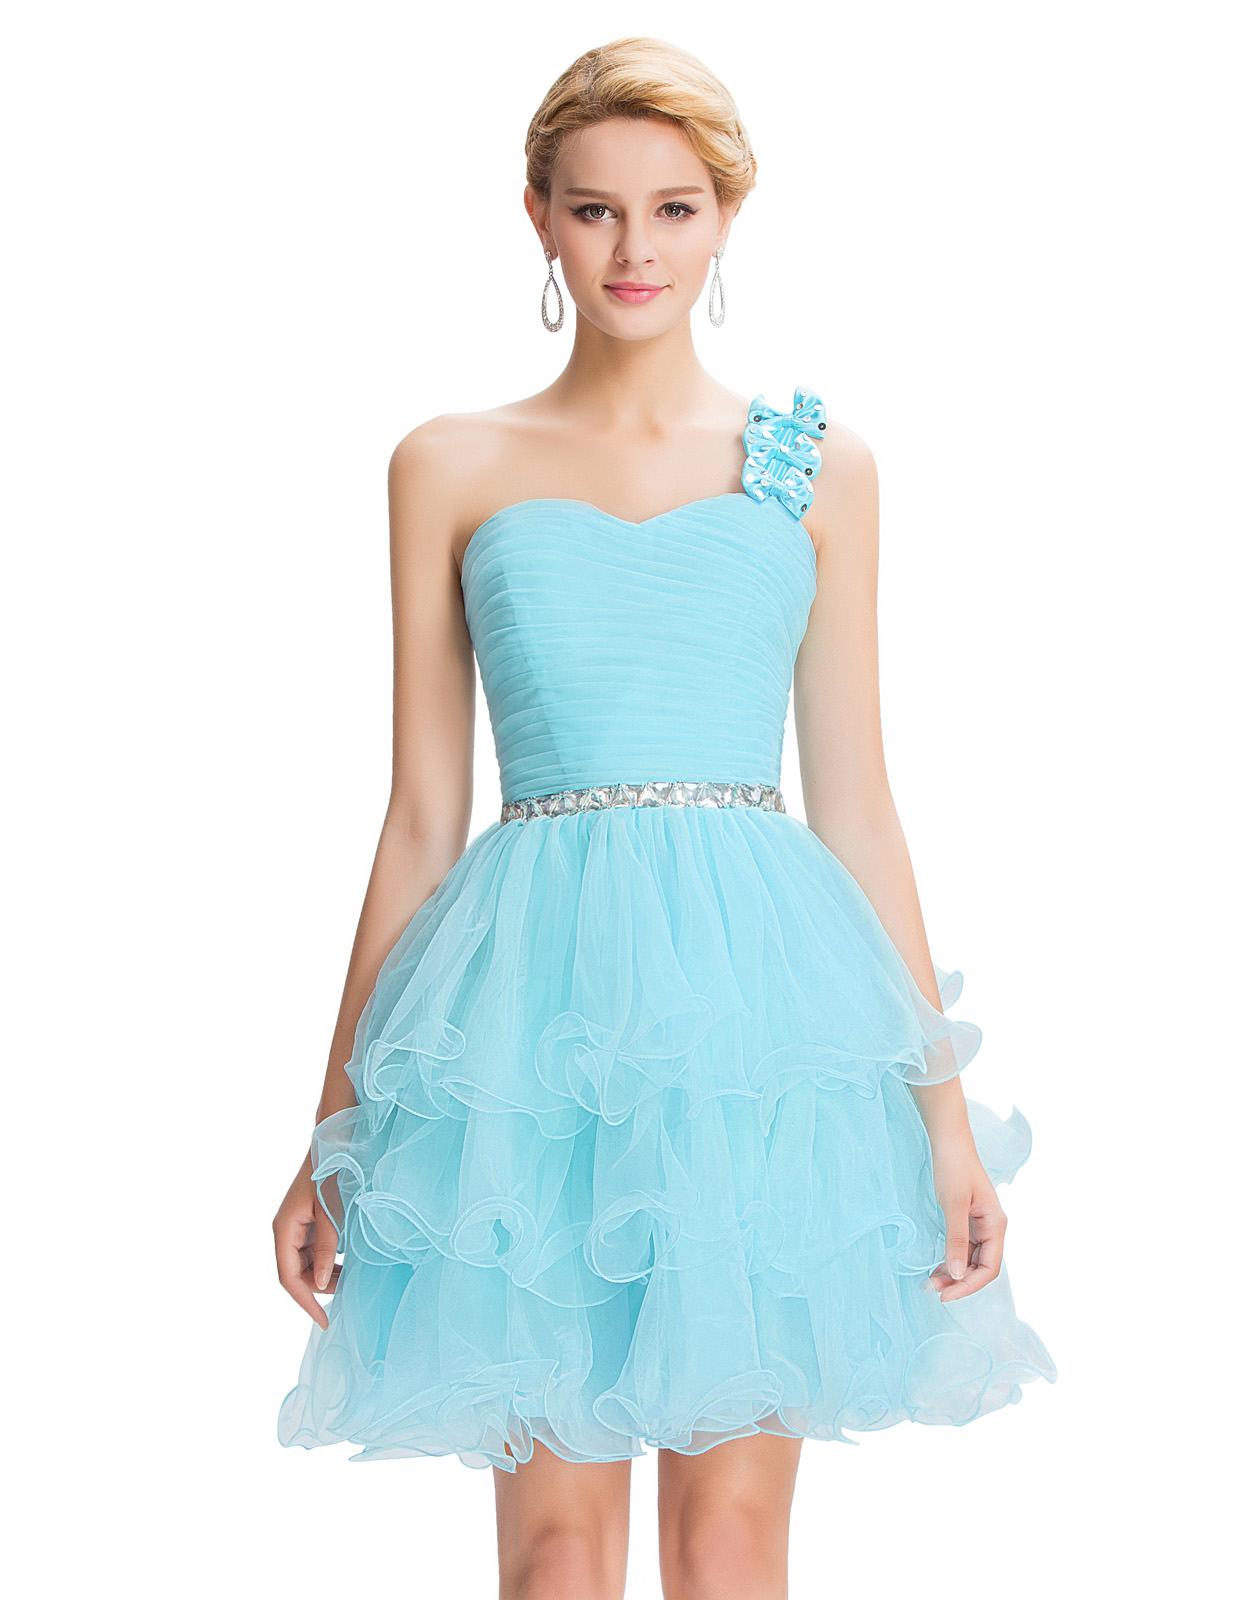 With One Strap Knee Length Prom Dresses – fashion dresses